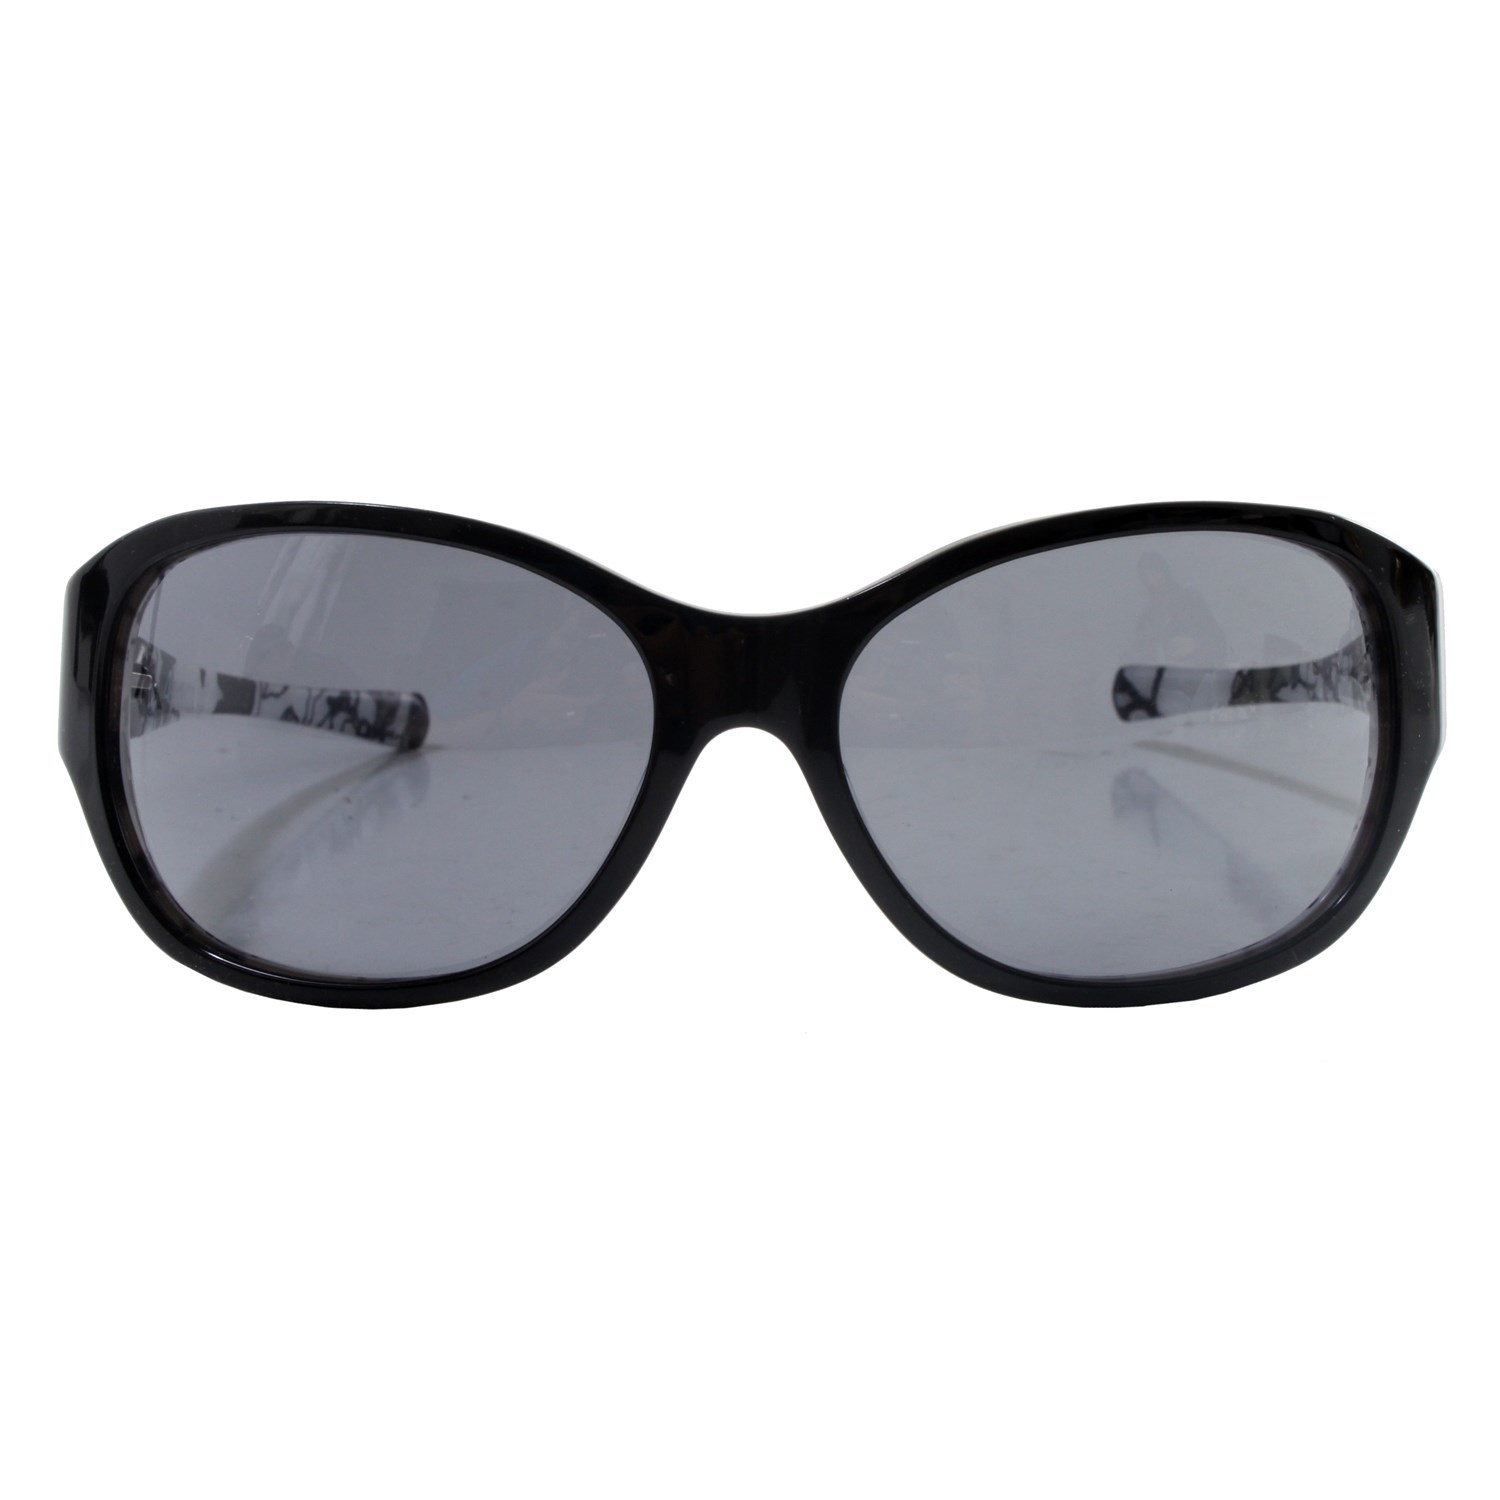 2012 Time Capsule additionally Zuppa Di Cime Di Rape in addition Lentes Ray Ban Para Mujer Peru further Sumithra further 554224297866921443. on ray ban outlet